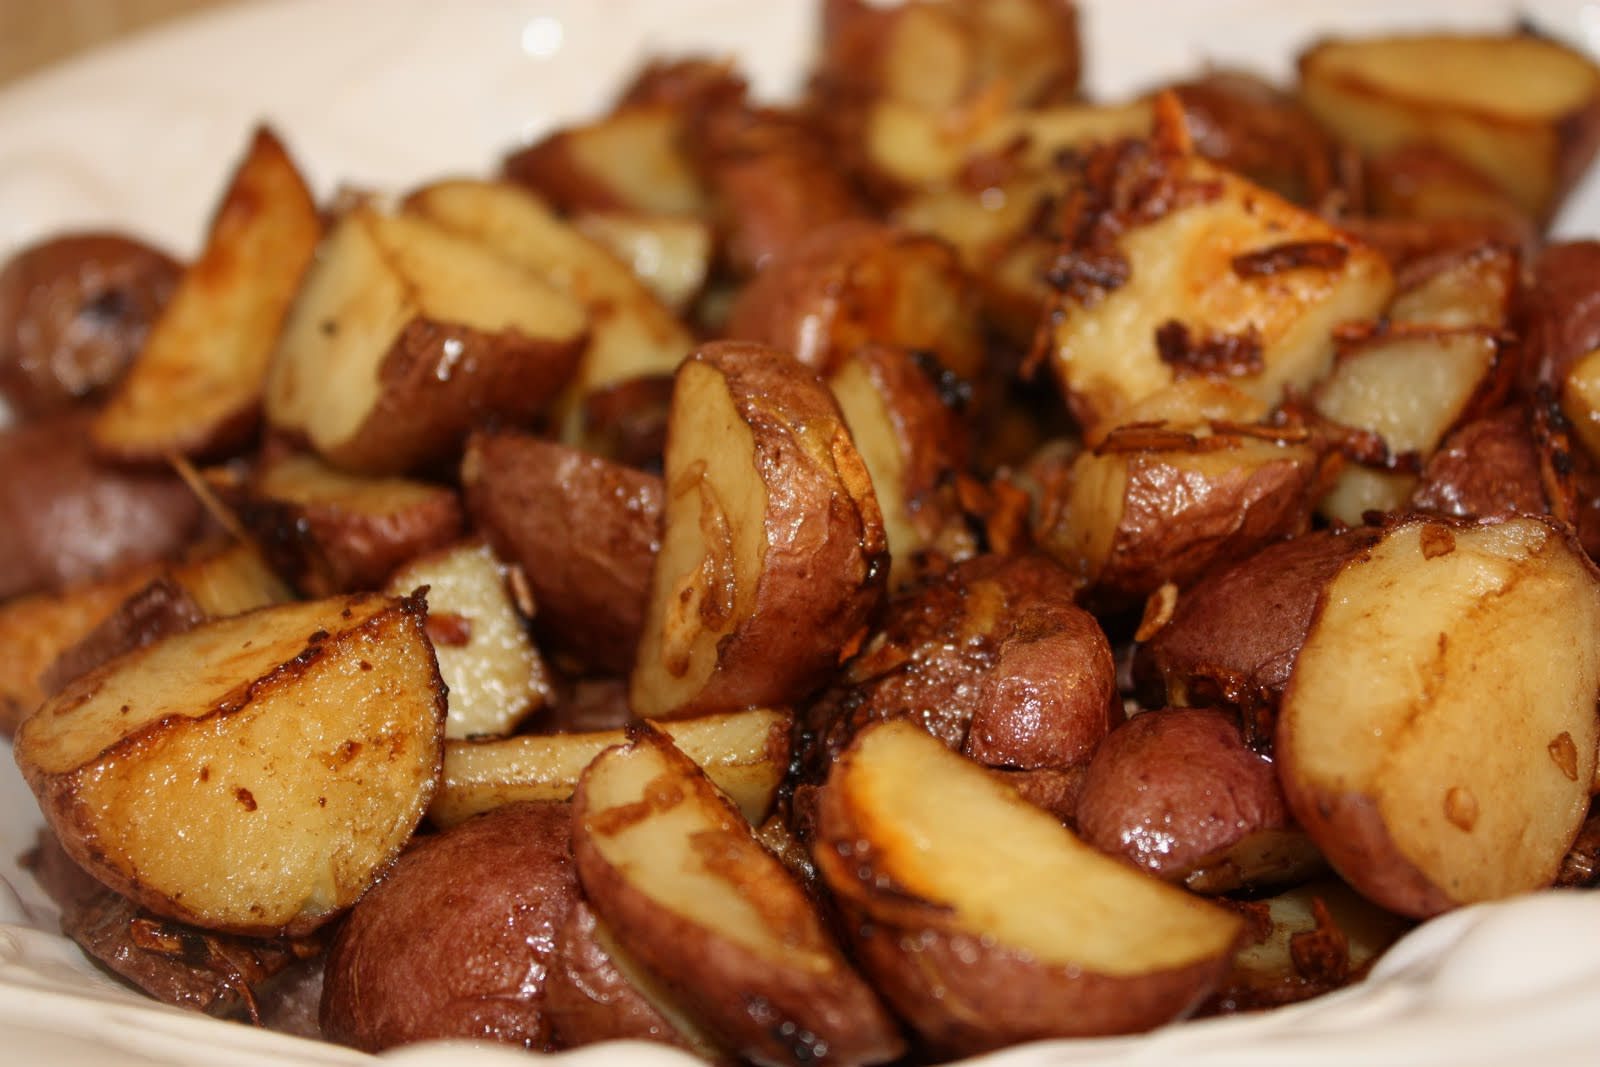 How long to cook cut up red potatoes in oven